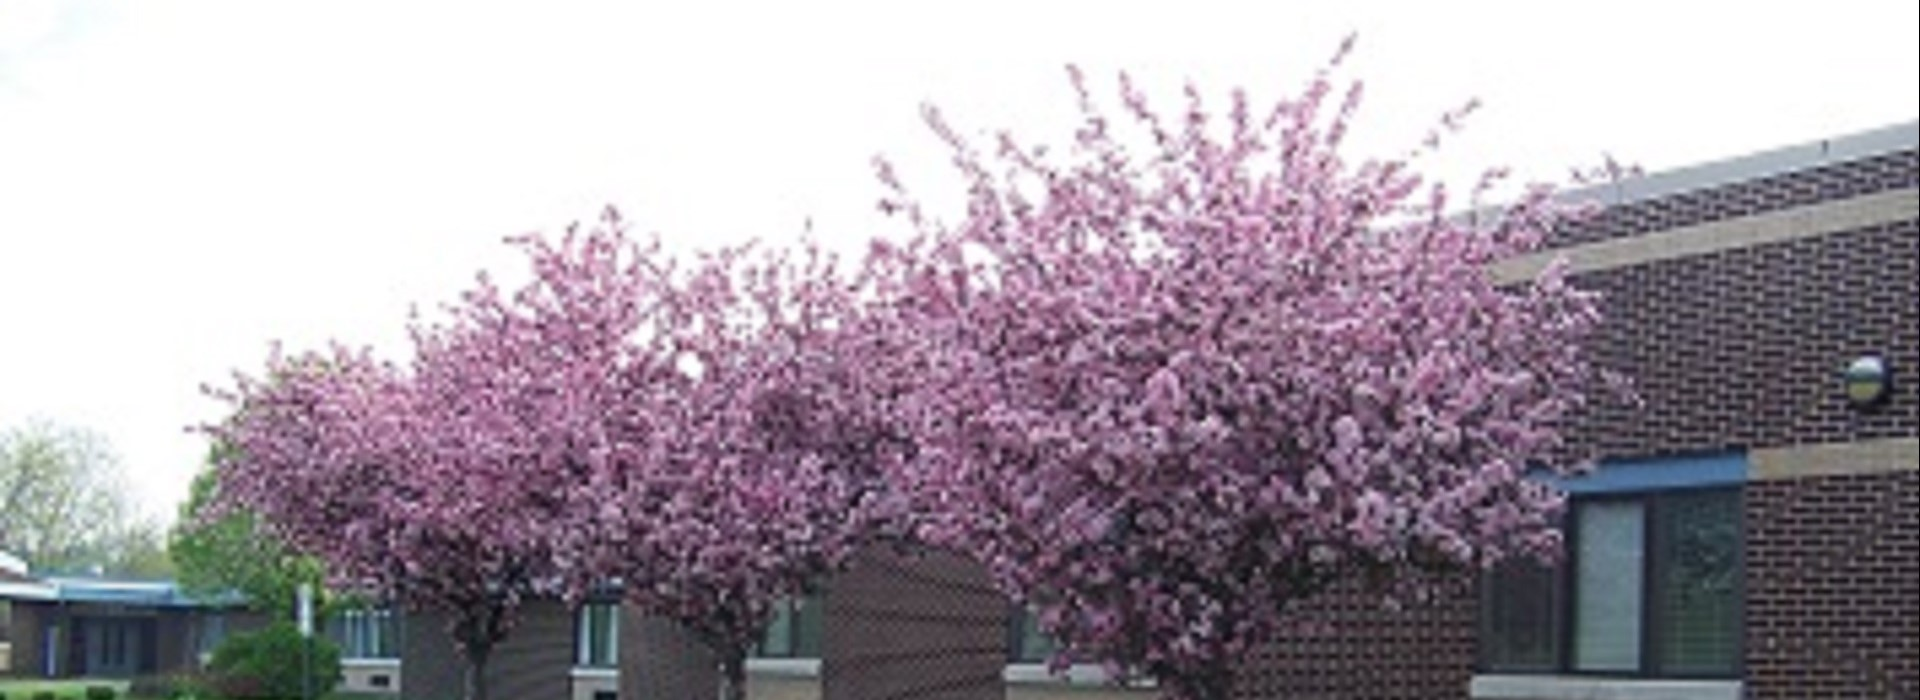 Crab-apple trees in bloom